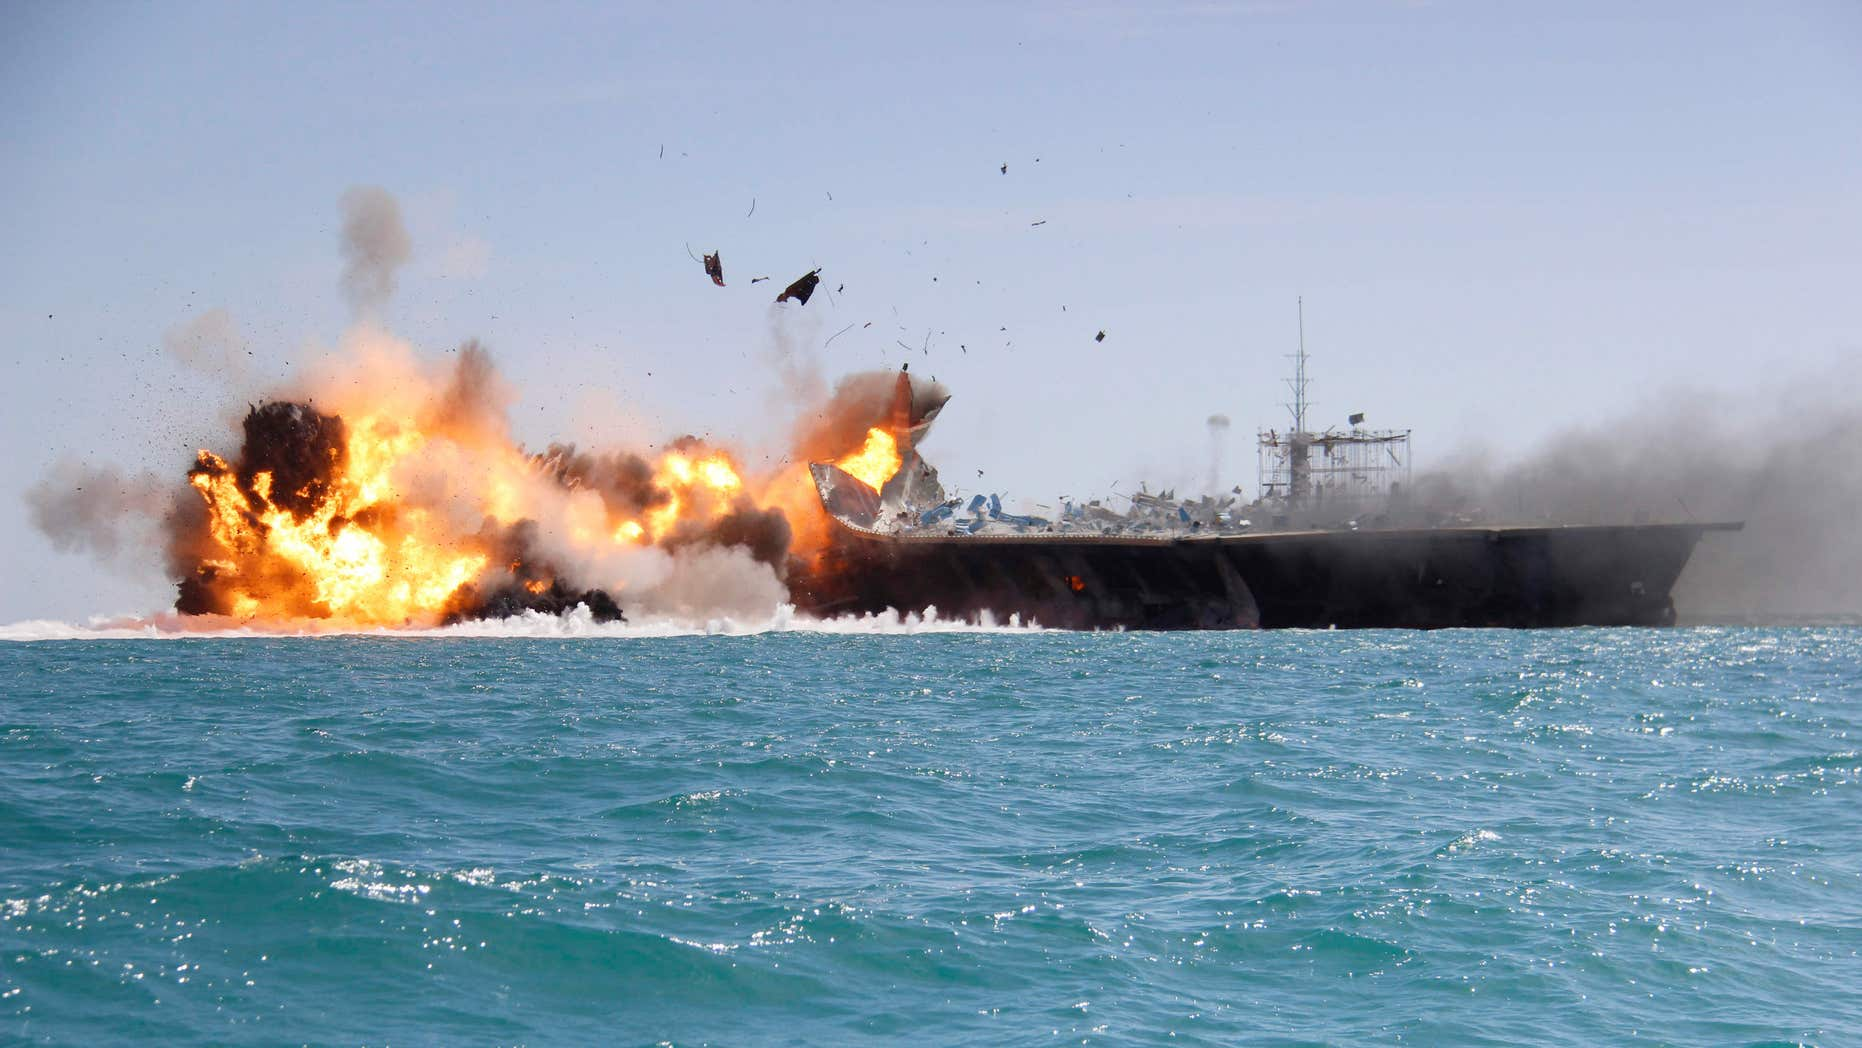 Feb. 25, 2015: A replica of a U.S. aircraft carrier is exploded by the Revolutionary Guard's speedboats during large-scale naval drills near the entrance of the Persian Gulf, Iran.